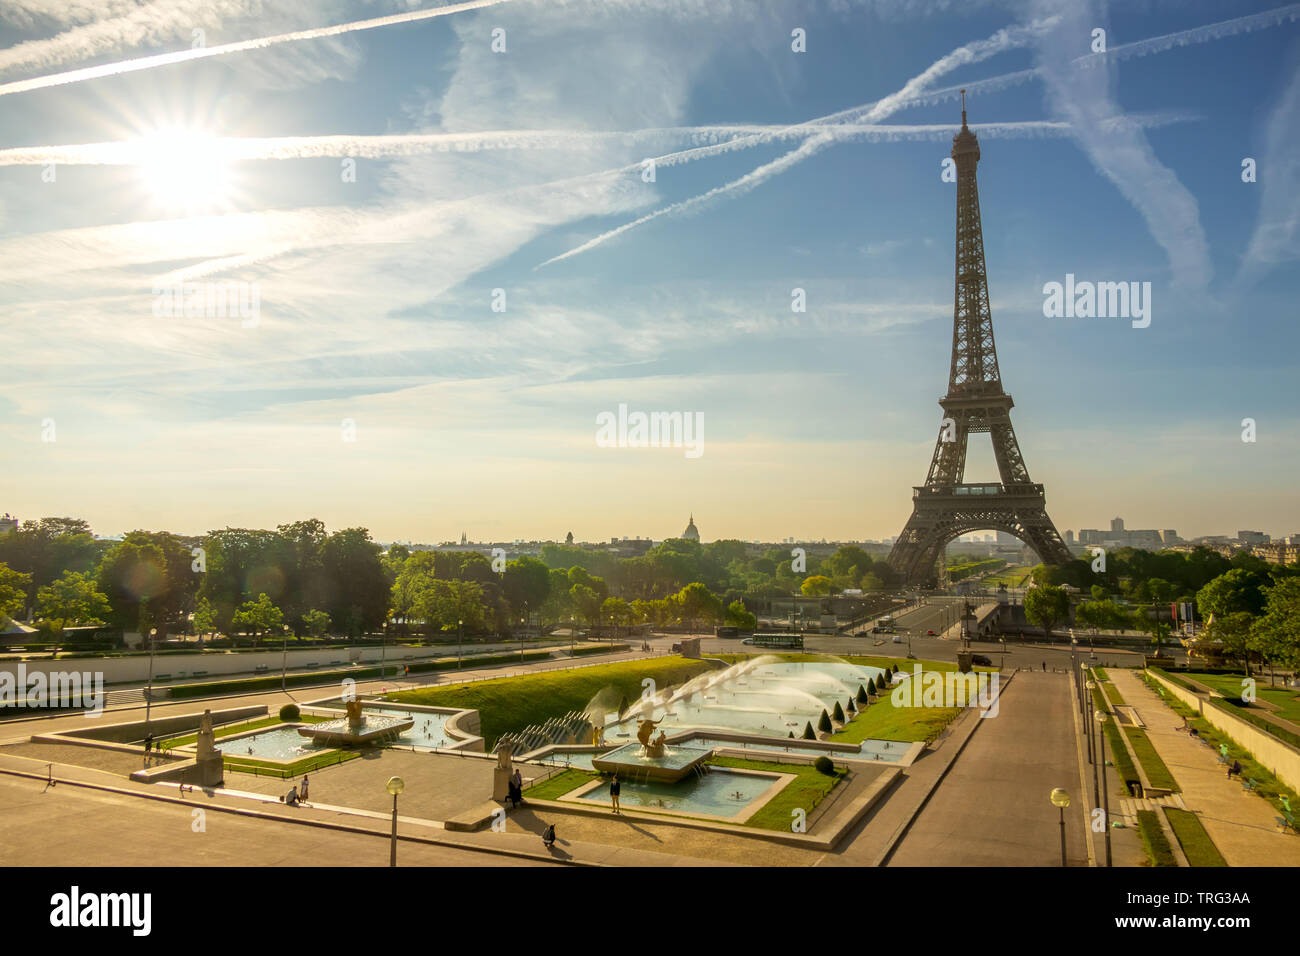 France. Paris. The Eiffel Tower and the fountain in the gardens of the Trocadero. Sunny morning - Stock Image